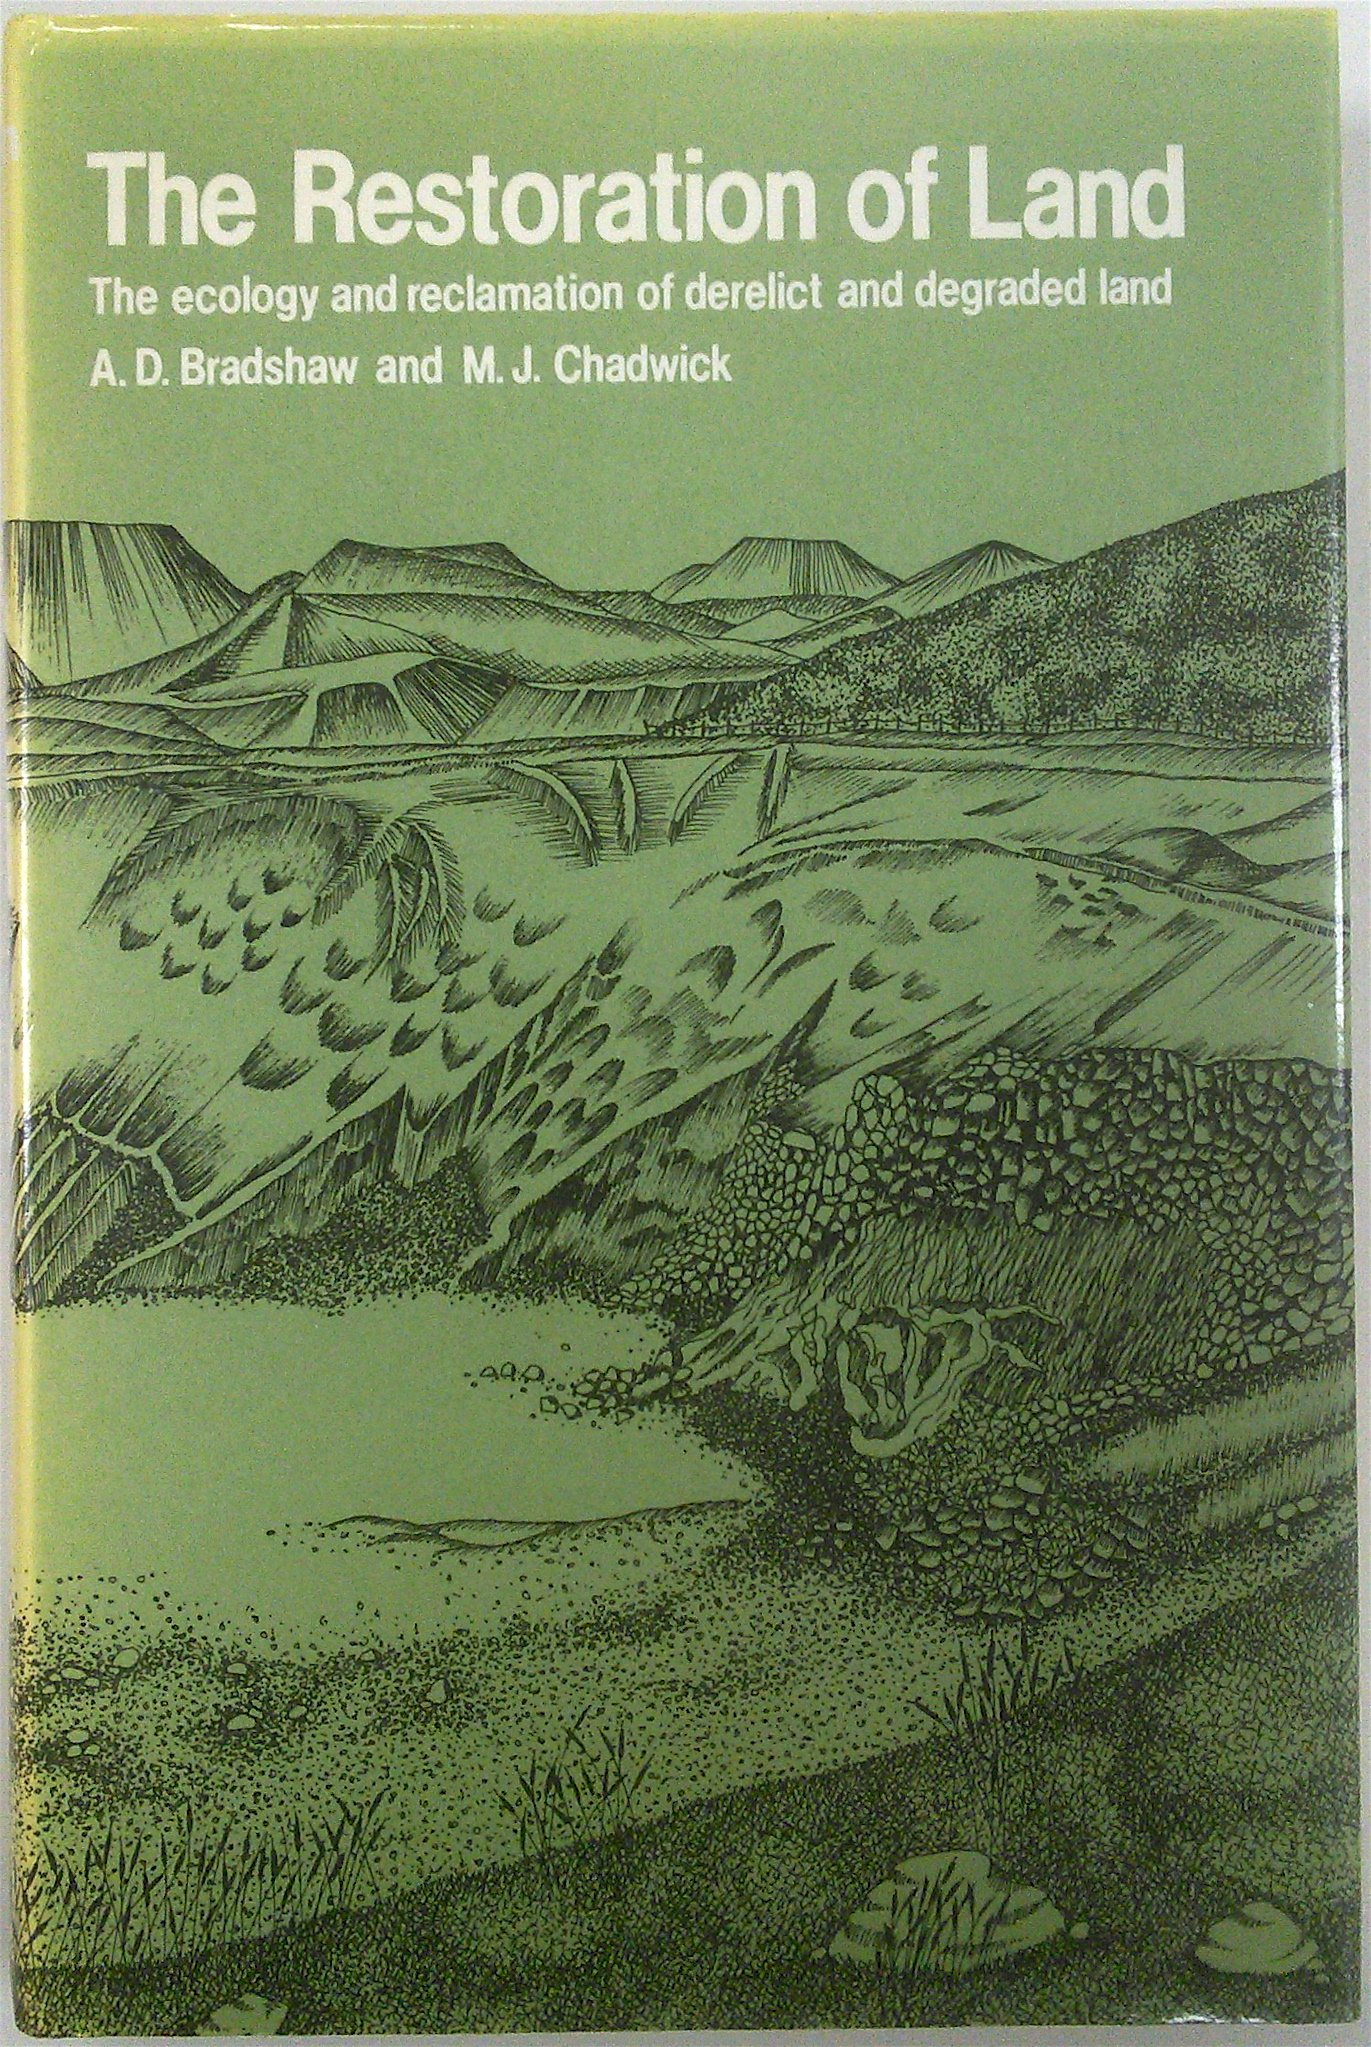 The Restoration of Land. The Ecology: Reclamation of Derelict and Degraded Land